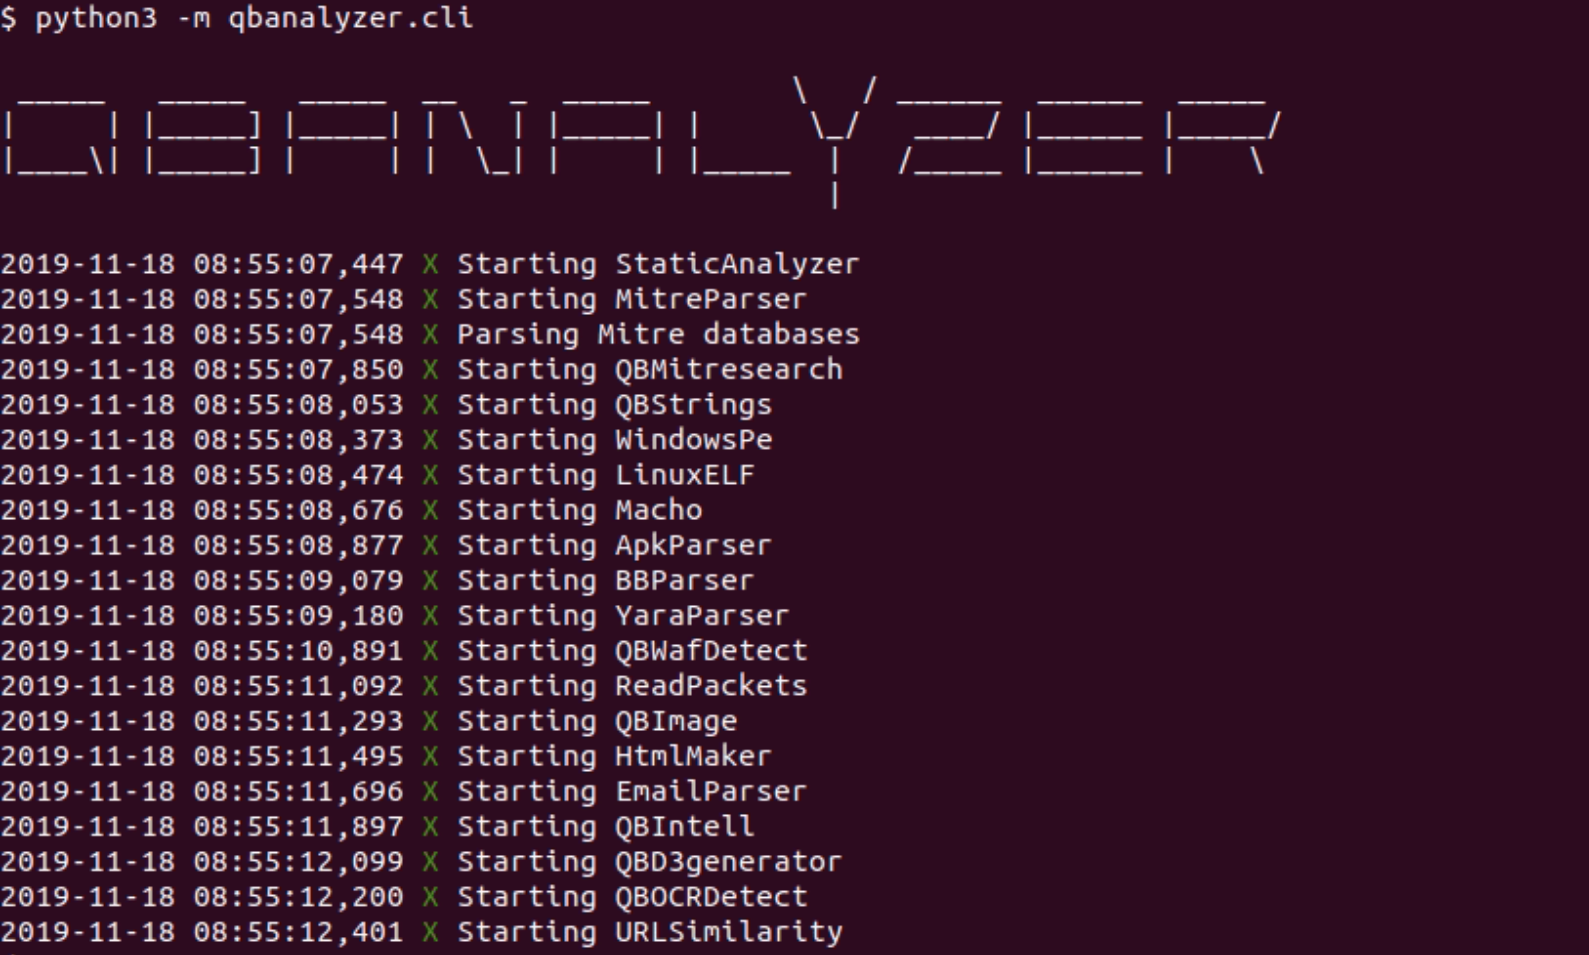 QBAnalyzer: Open source threat intelligence framework